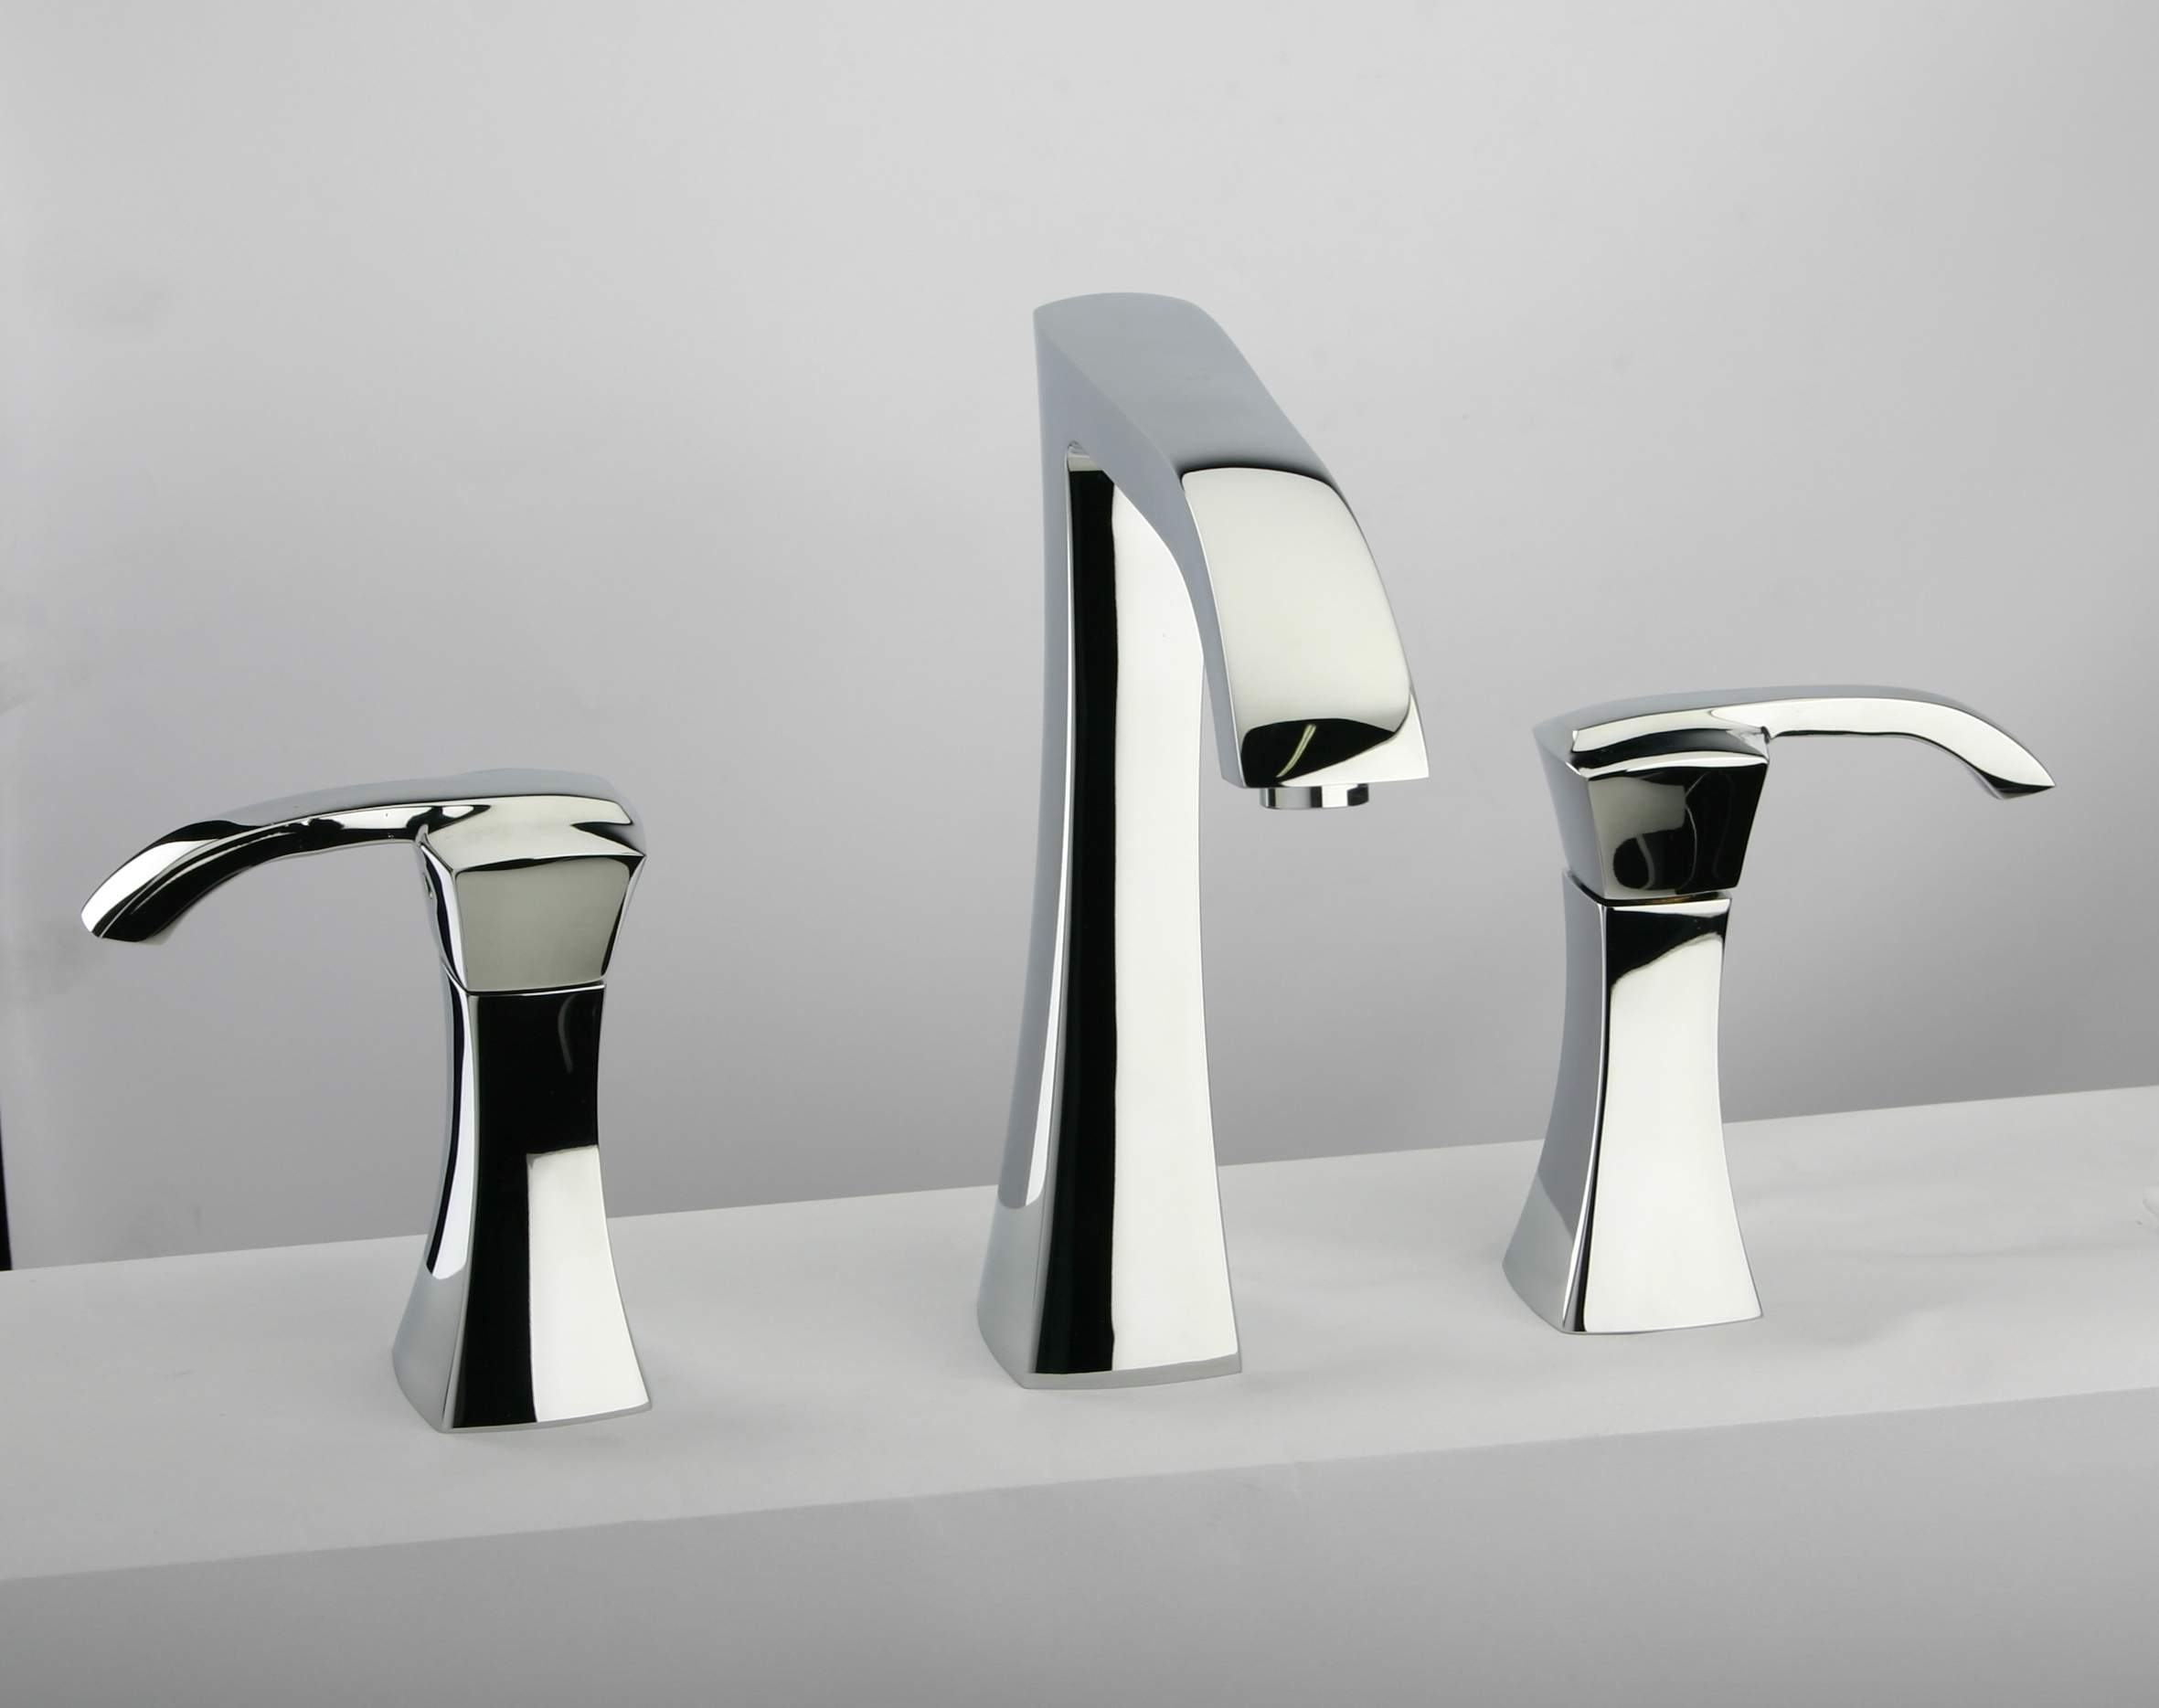 illusio chrome zoom roll faucet bathroom vessel in single kef image over faucets to com kraususa lever